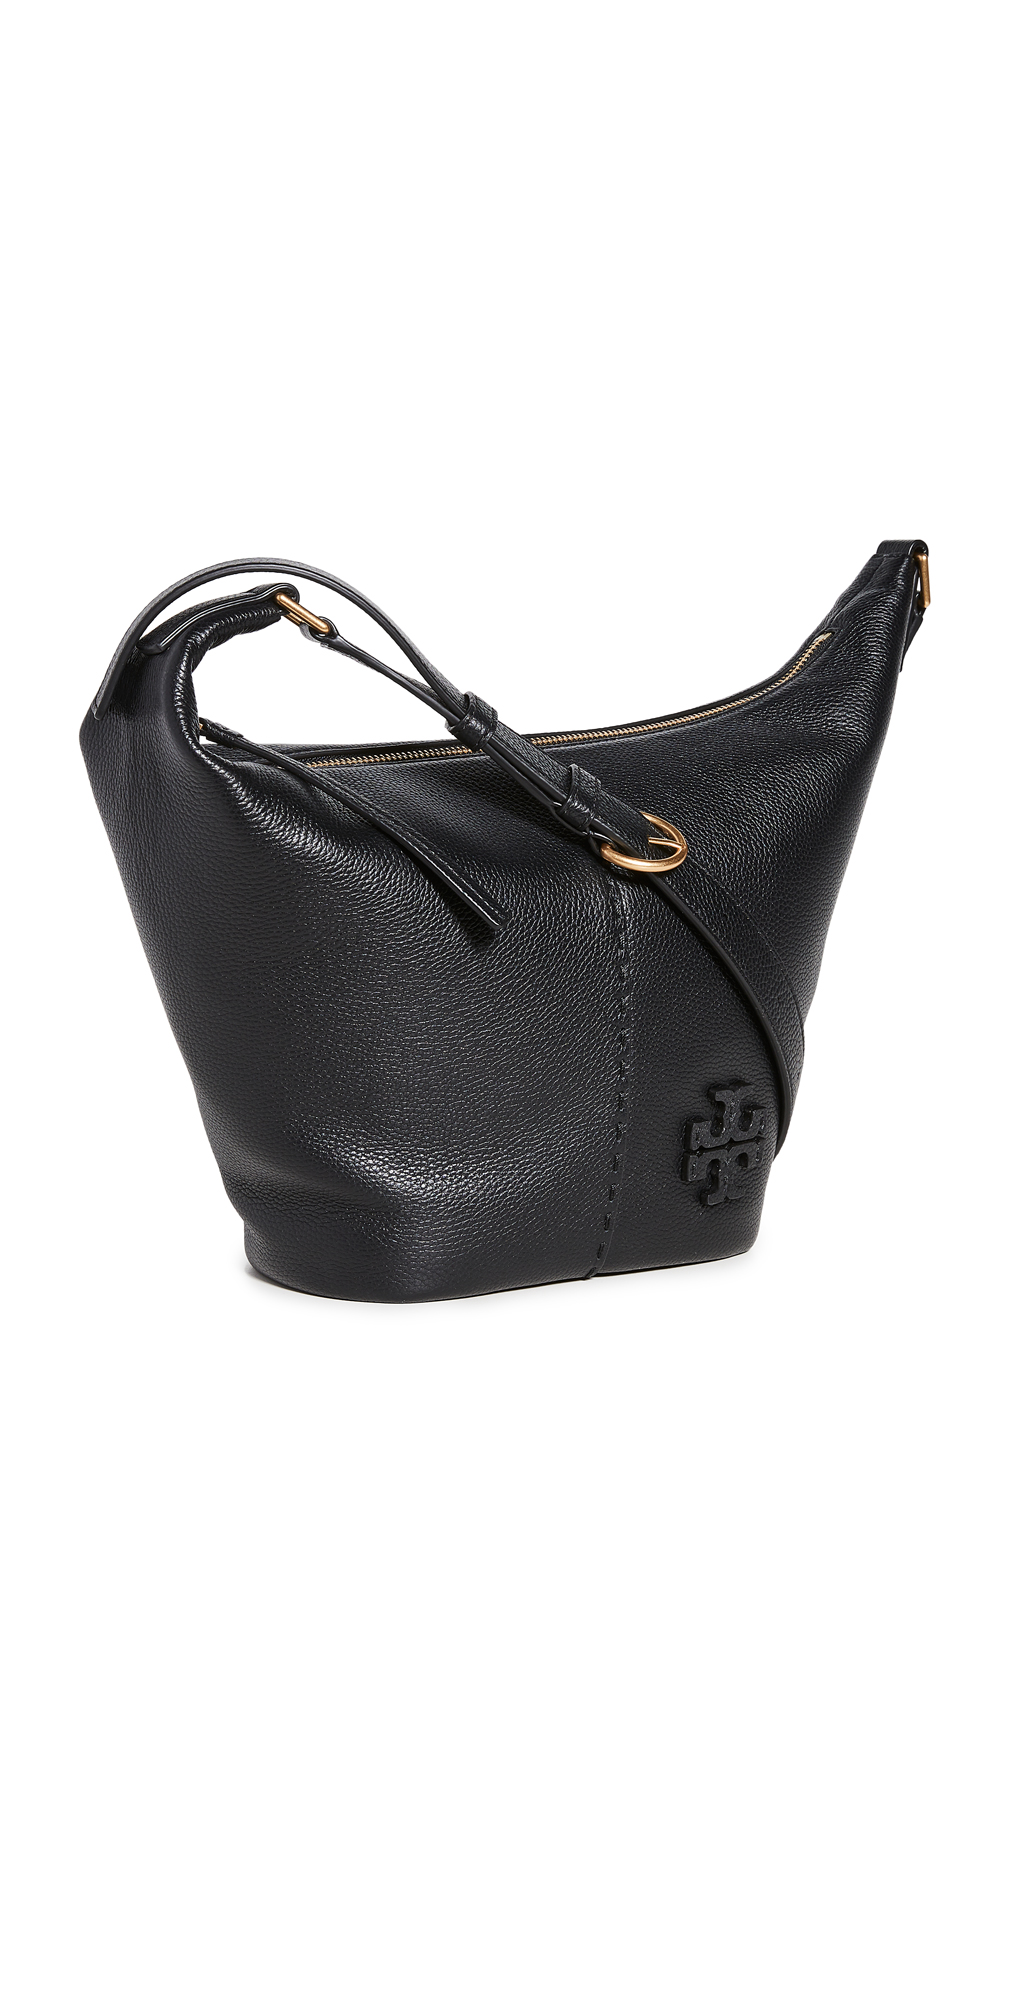 Tory Burch Mcgraw Small Zip Bucket Bag